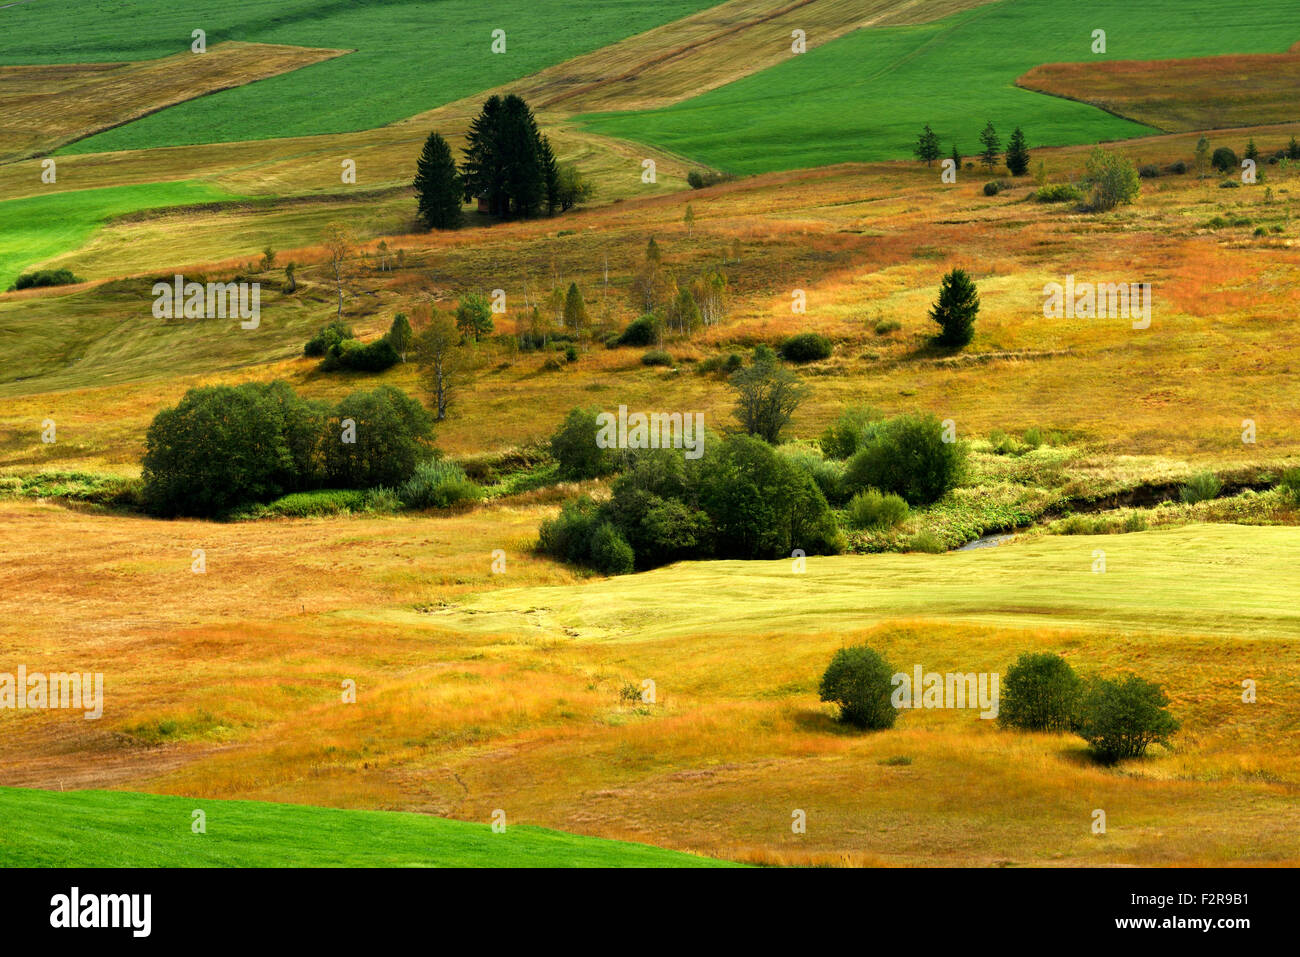 Upland moor Rothenthurm, Canton of Schwyz, Switzerland - Stock Image